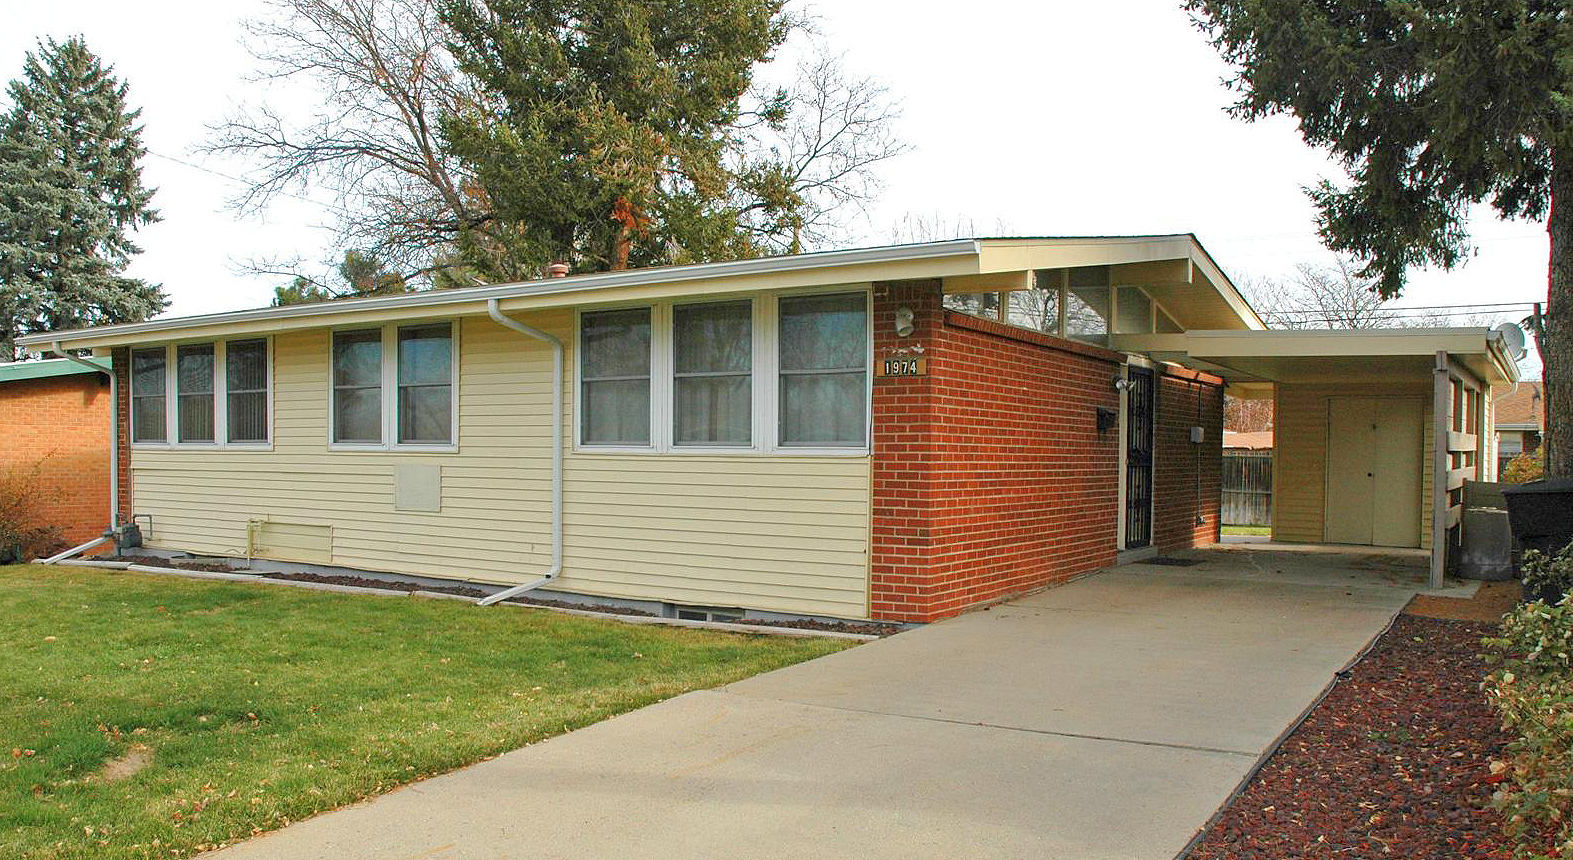 Affordable mid century modern under 225k for Affordable modern homes for sale